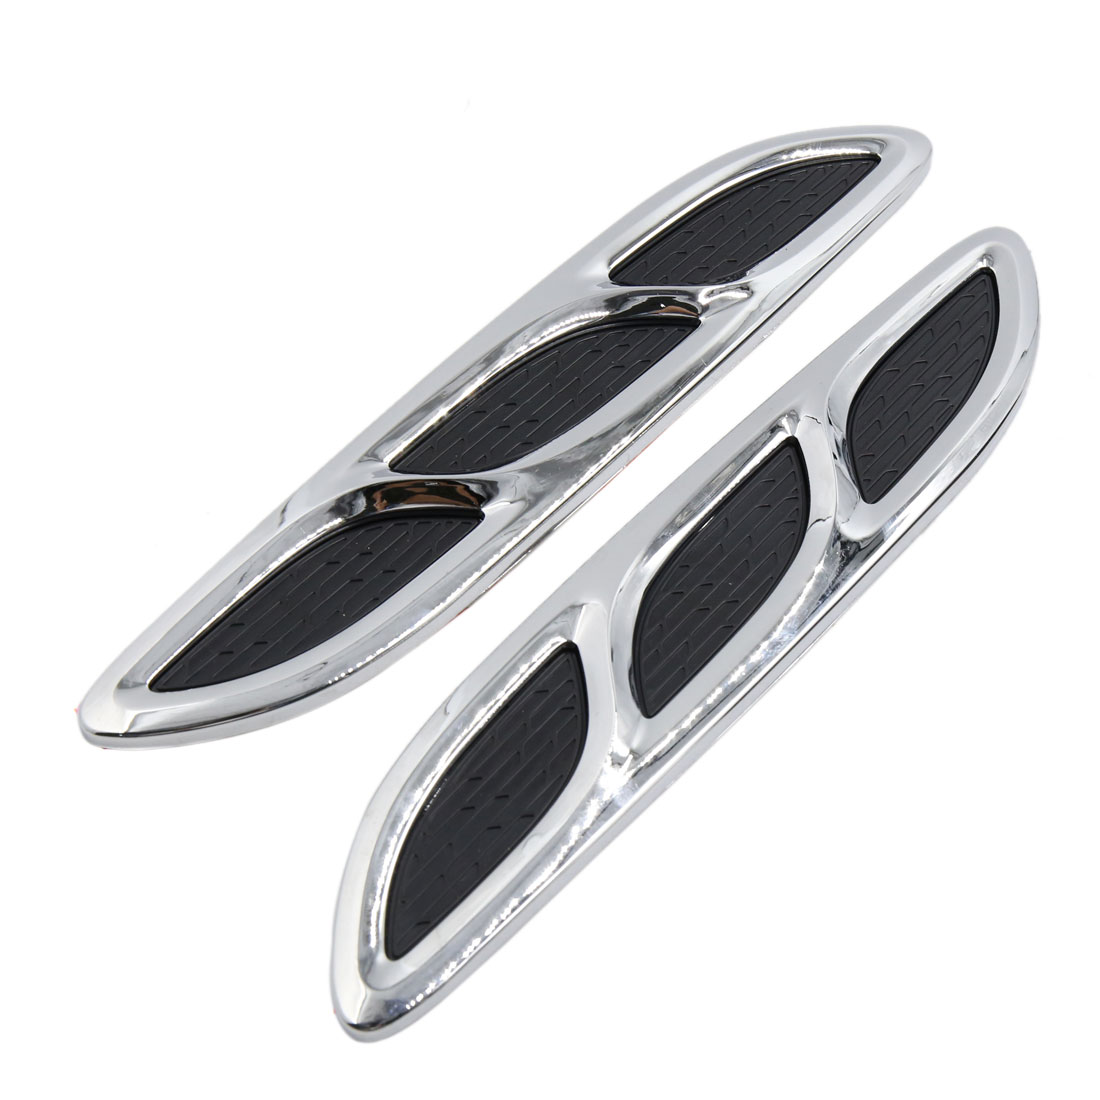 2 Pcs Silver Tone Black Car Air Intake Flow Vent Fender Decoration Sticker